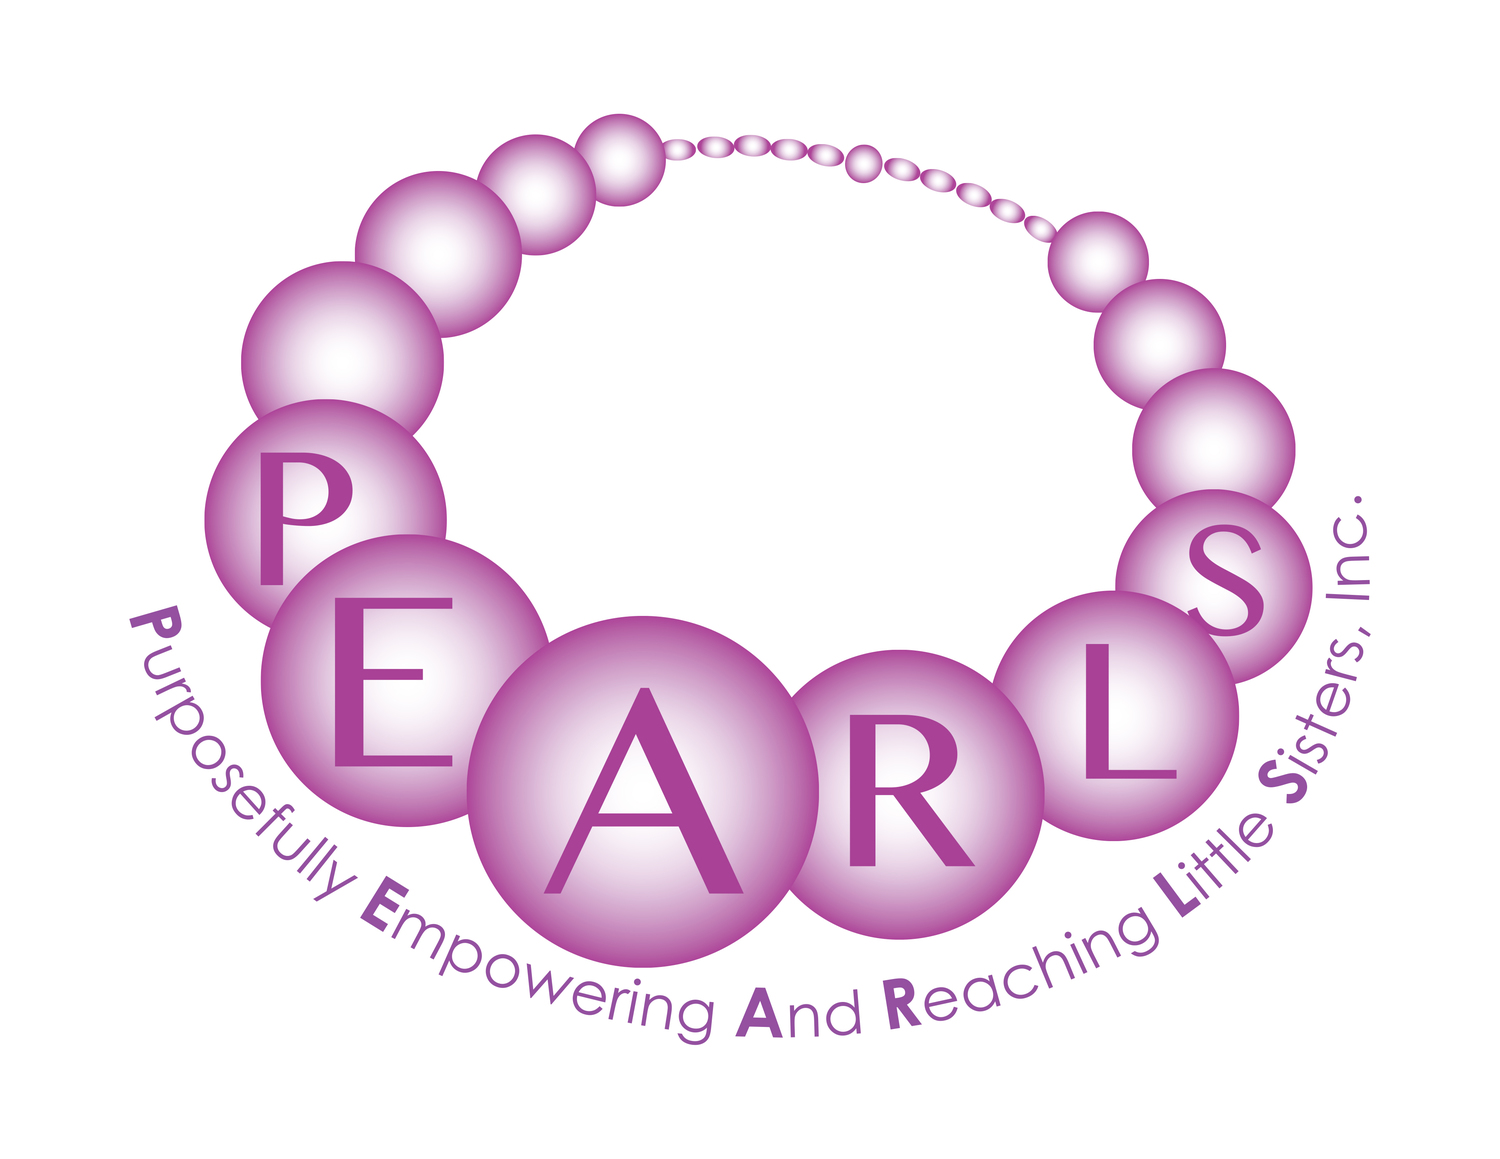 The Pearls Inc